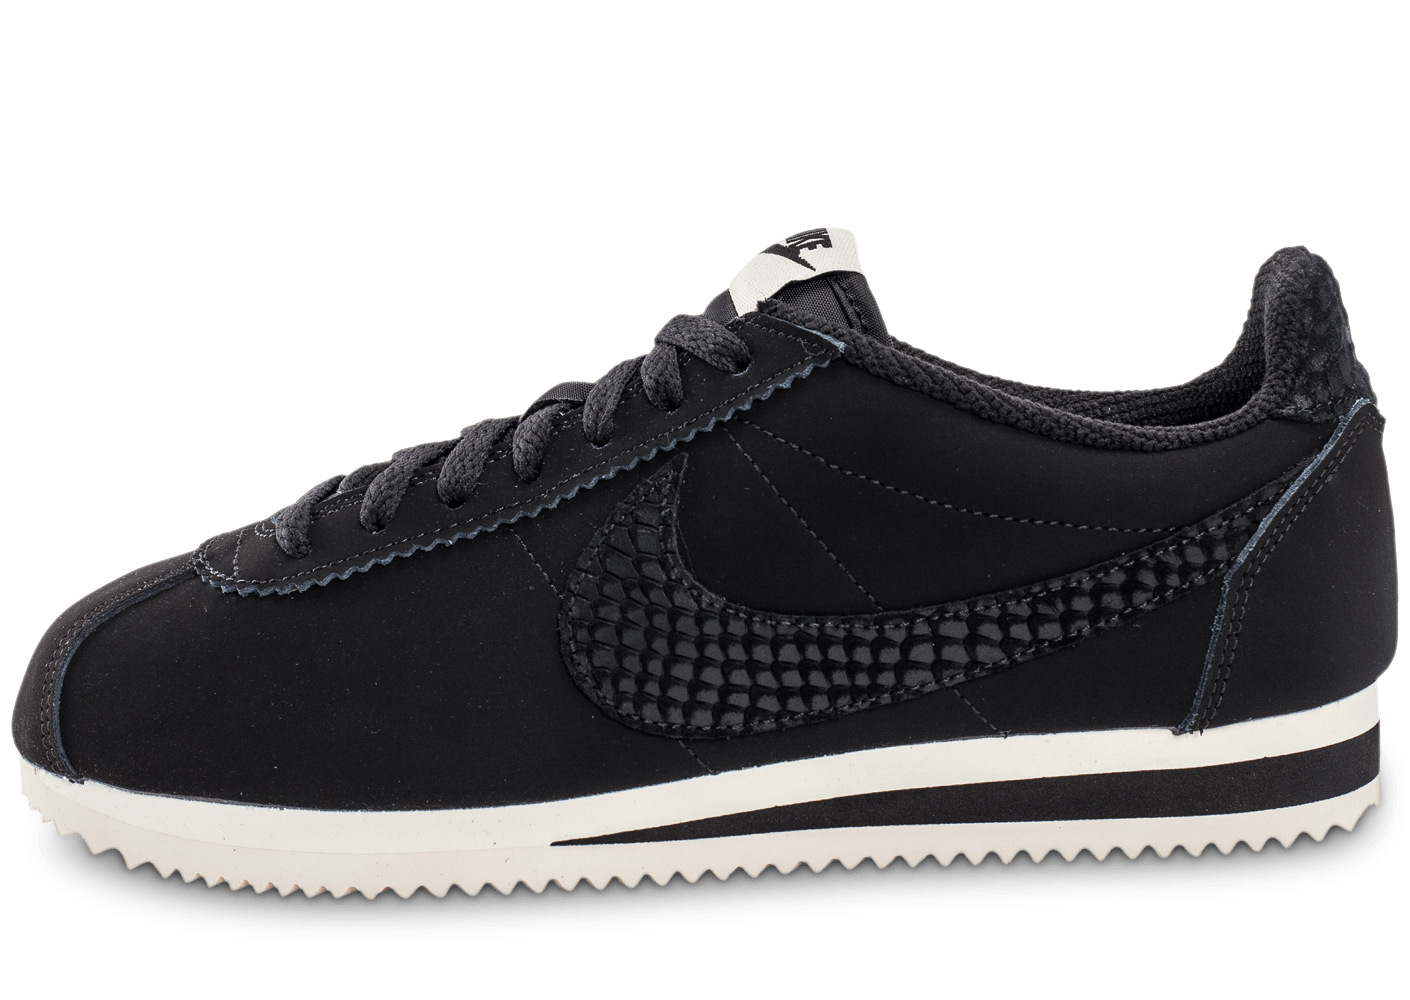 nike cortez leather se noire chaussures homme chausport. Black Bedroom Furniture Sets. Home Design Ideas